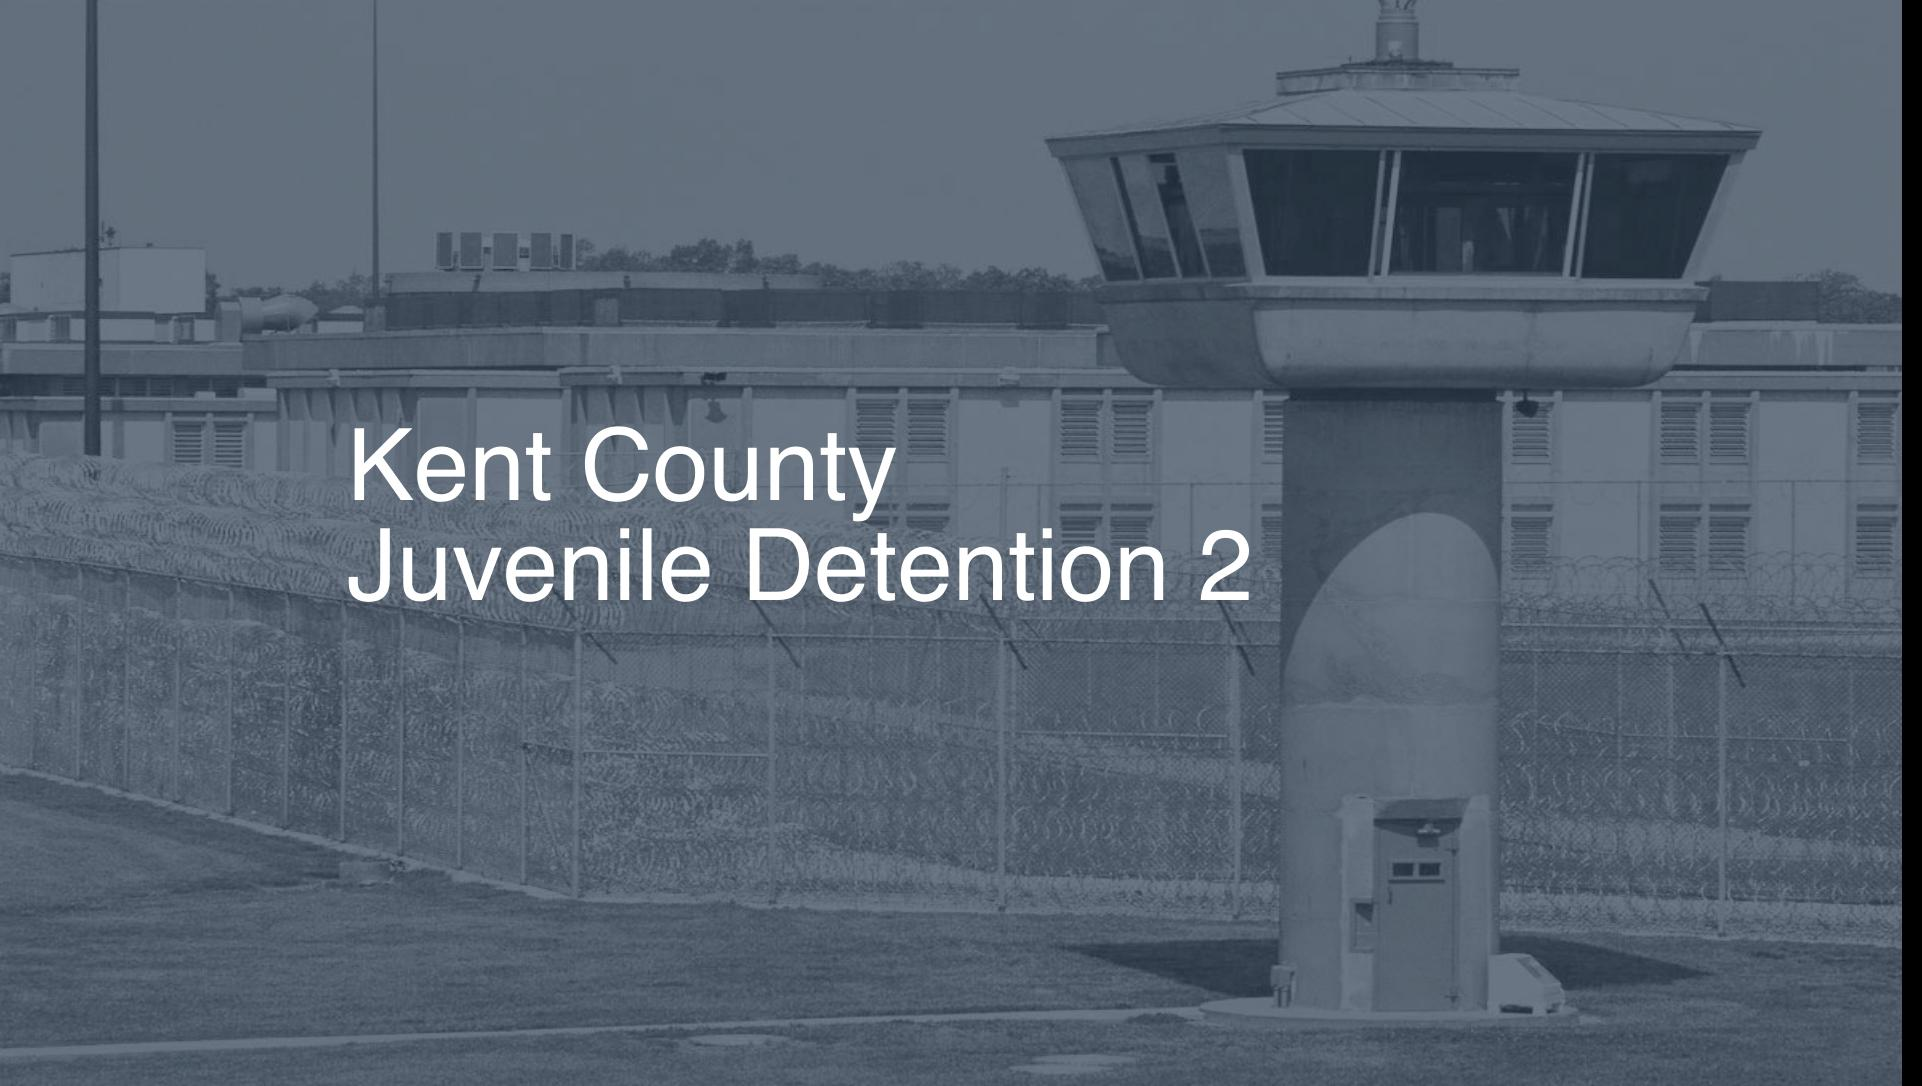 Kent County Juvenile Detention Inmate Search, Lookup & Services